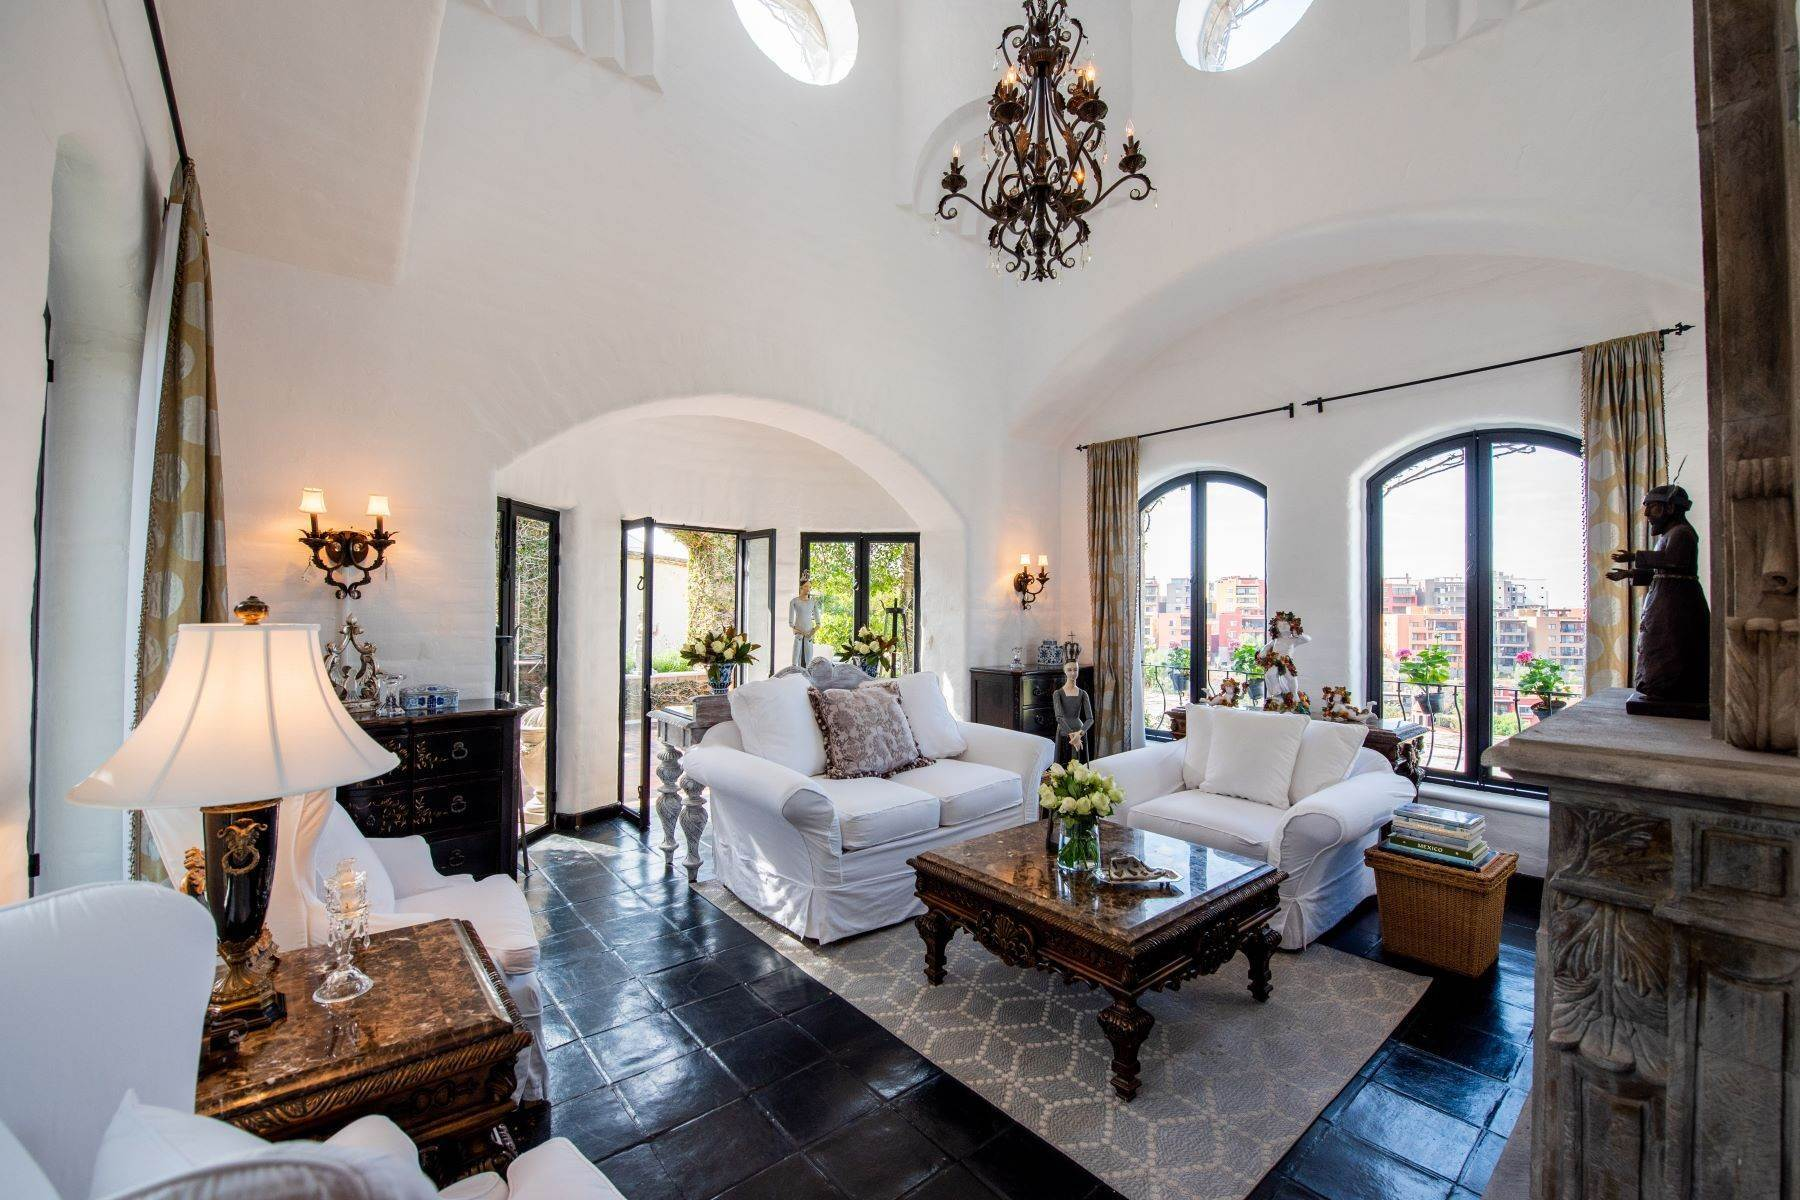 12. Single Family Homes for Sale at Casa Mi Besito Atascadero, San Miguel De Allende, Guanajuato Mexico